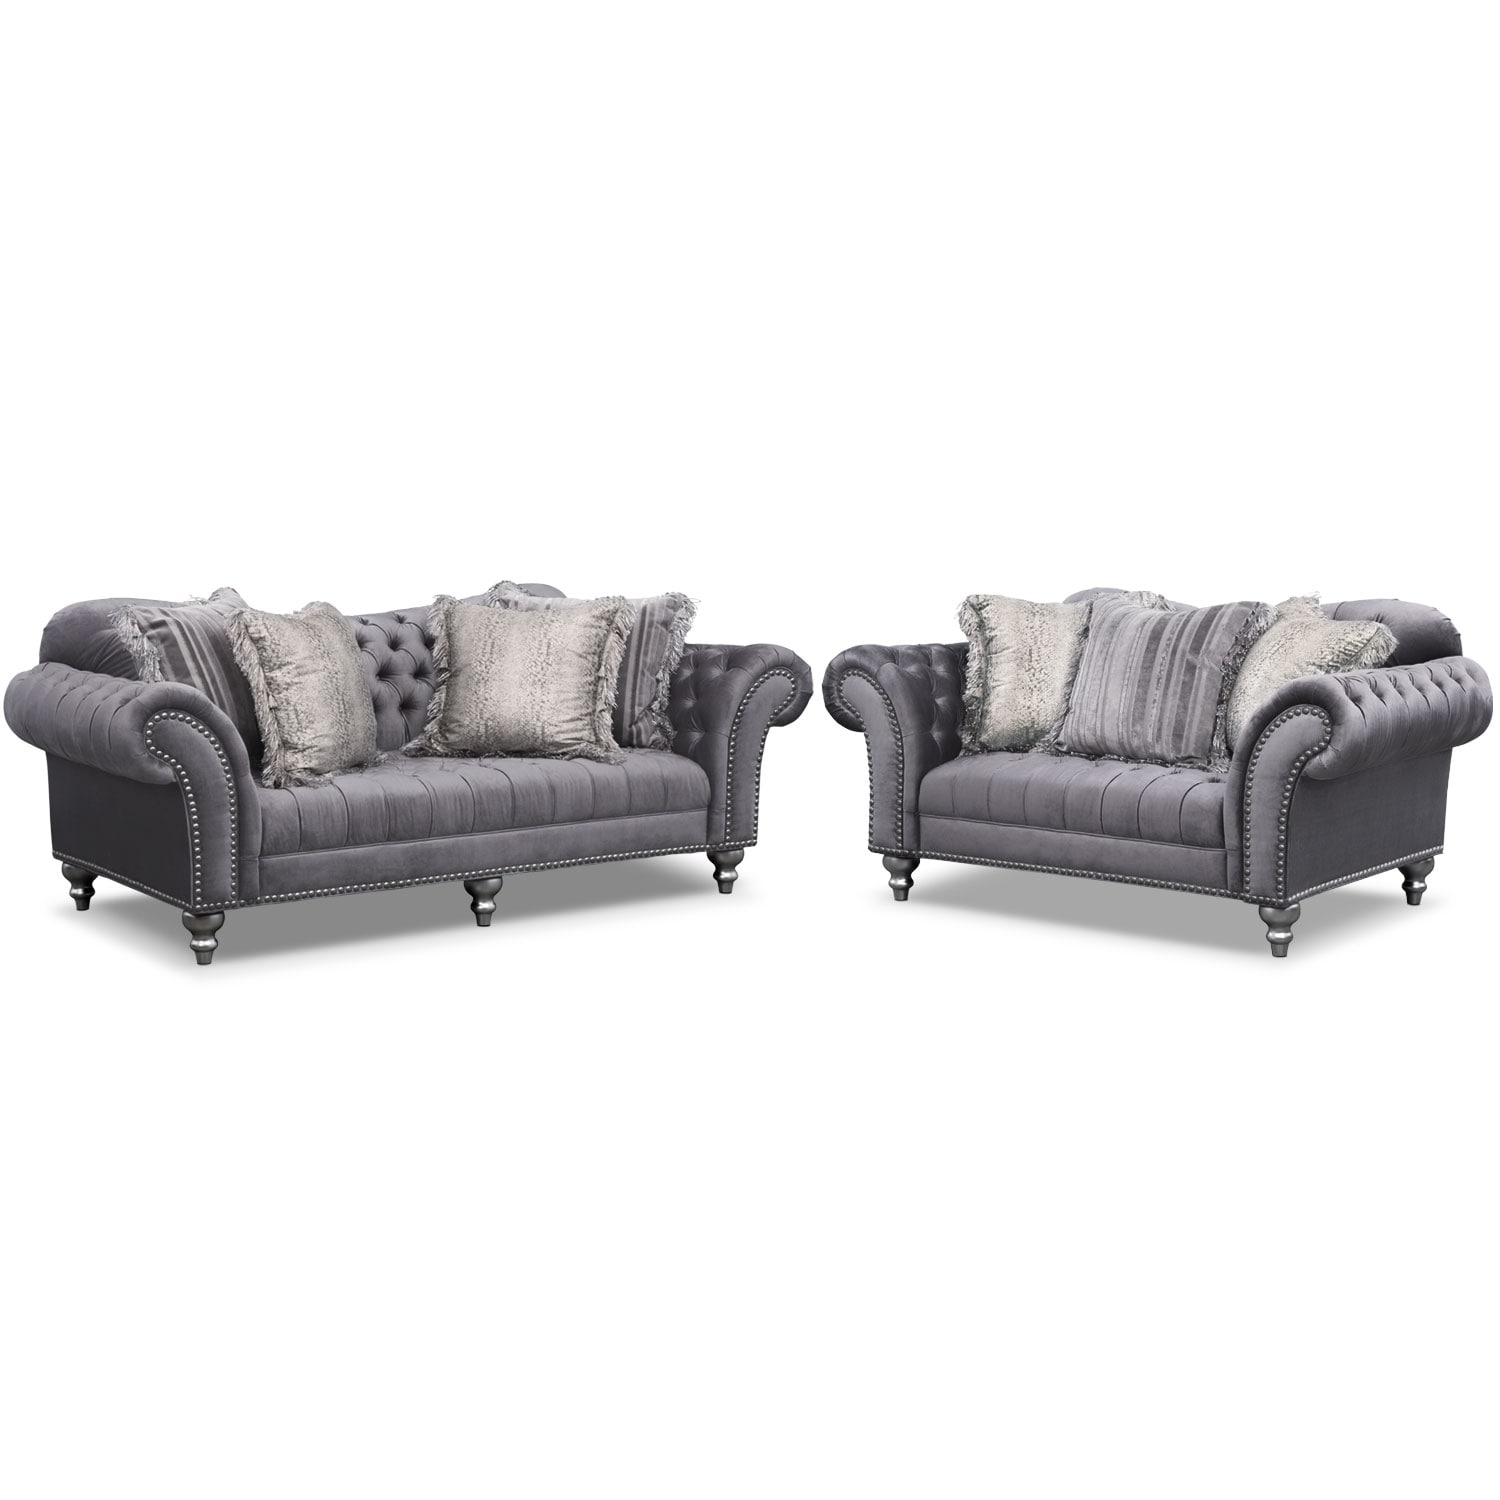 Brittney Sofa and Loveseat Set - Gray | Value City Furniture and ...